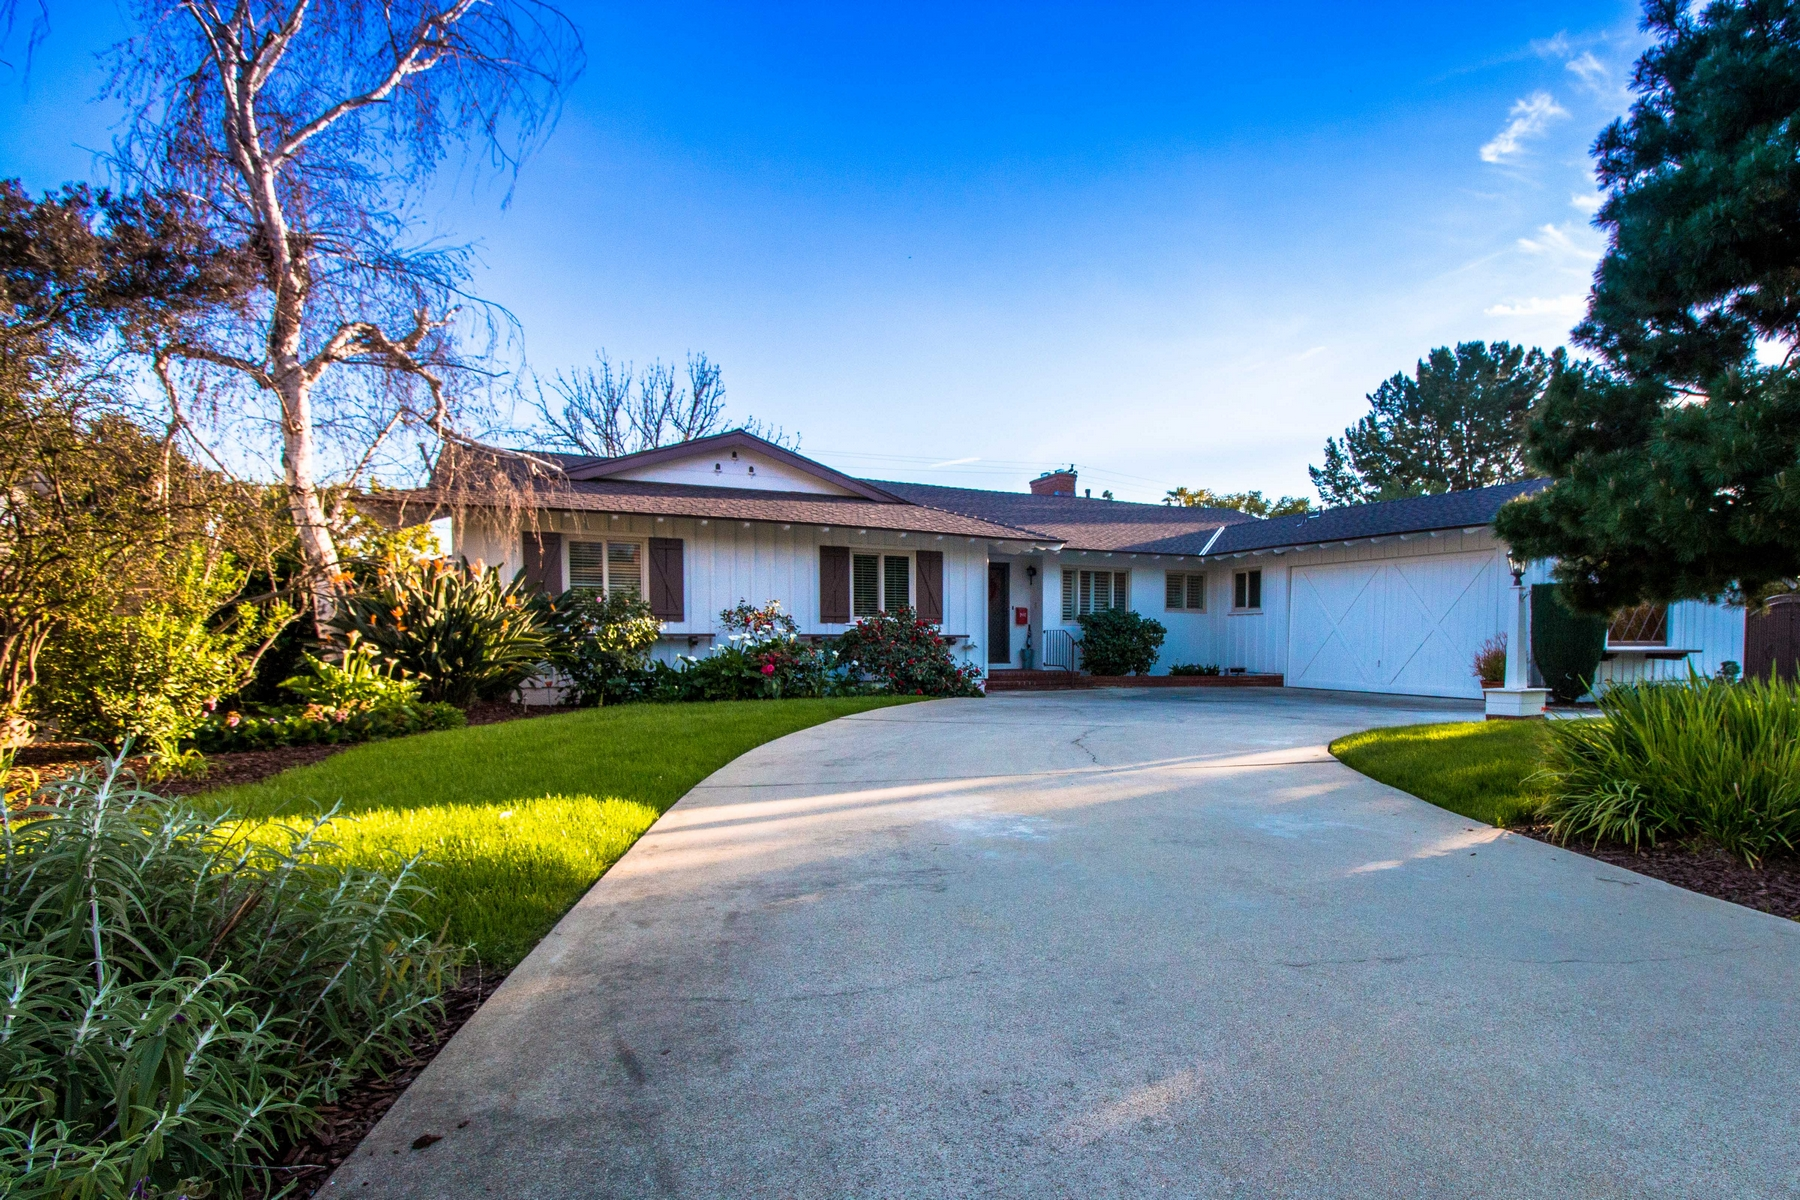 Single Family Home for Sale at 620 Wellesley Drive Claremont, California 91711 United States